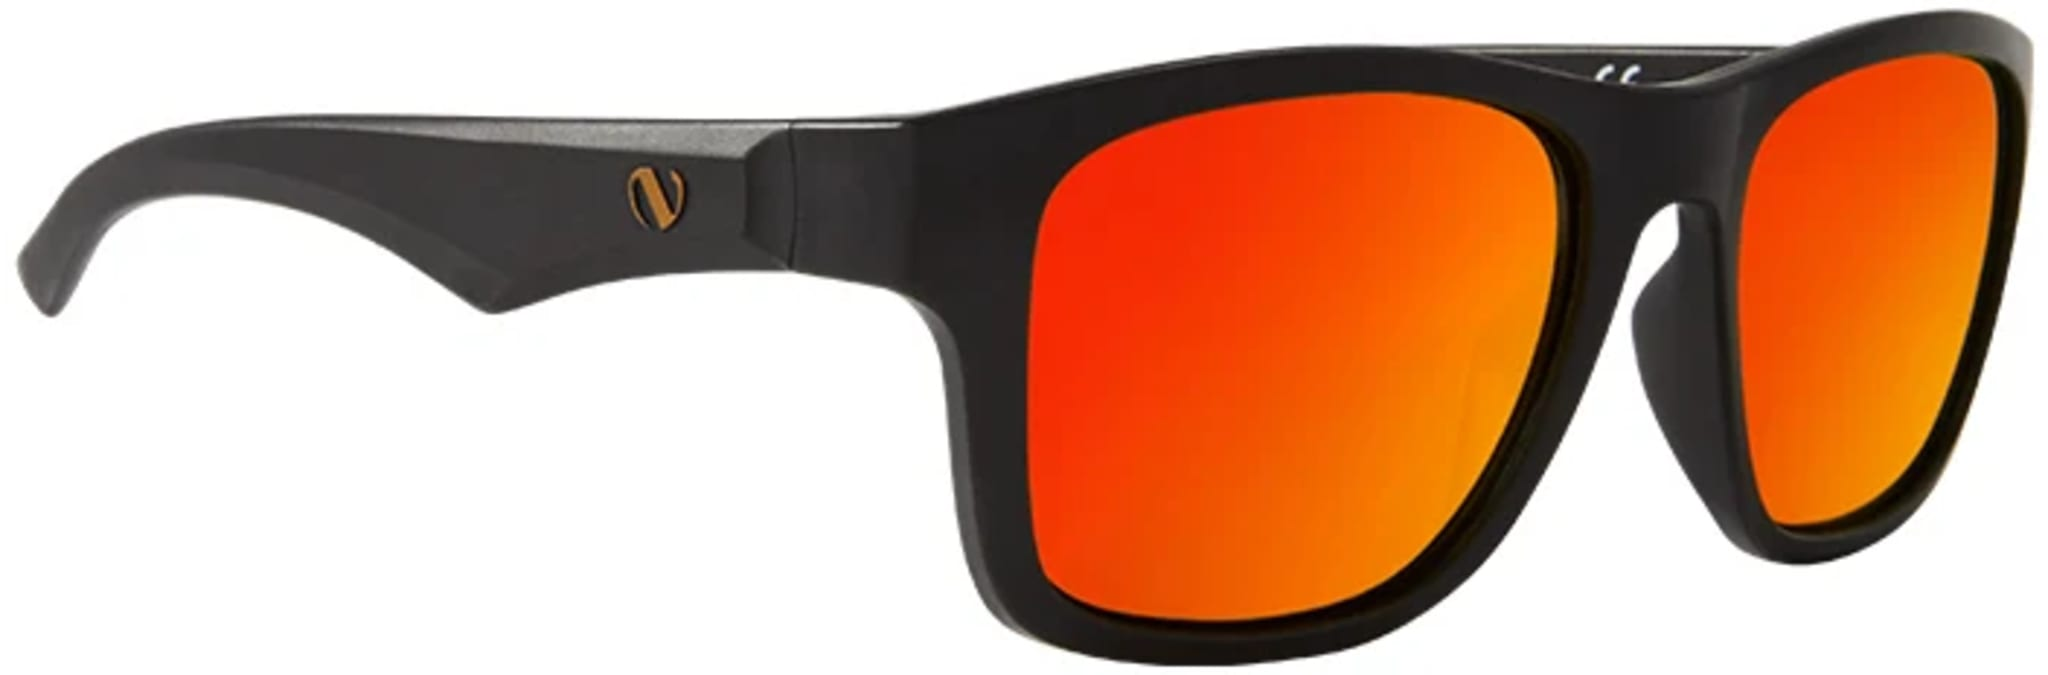 Daycruiser Polarized